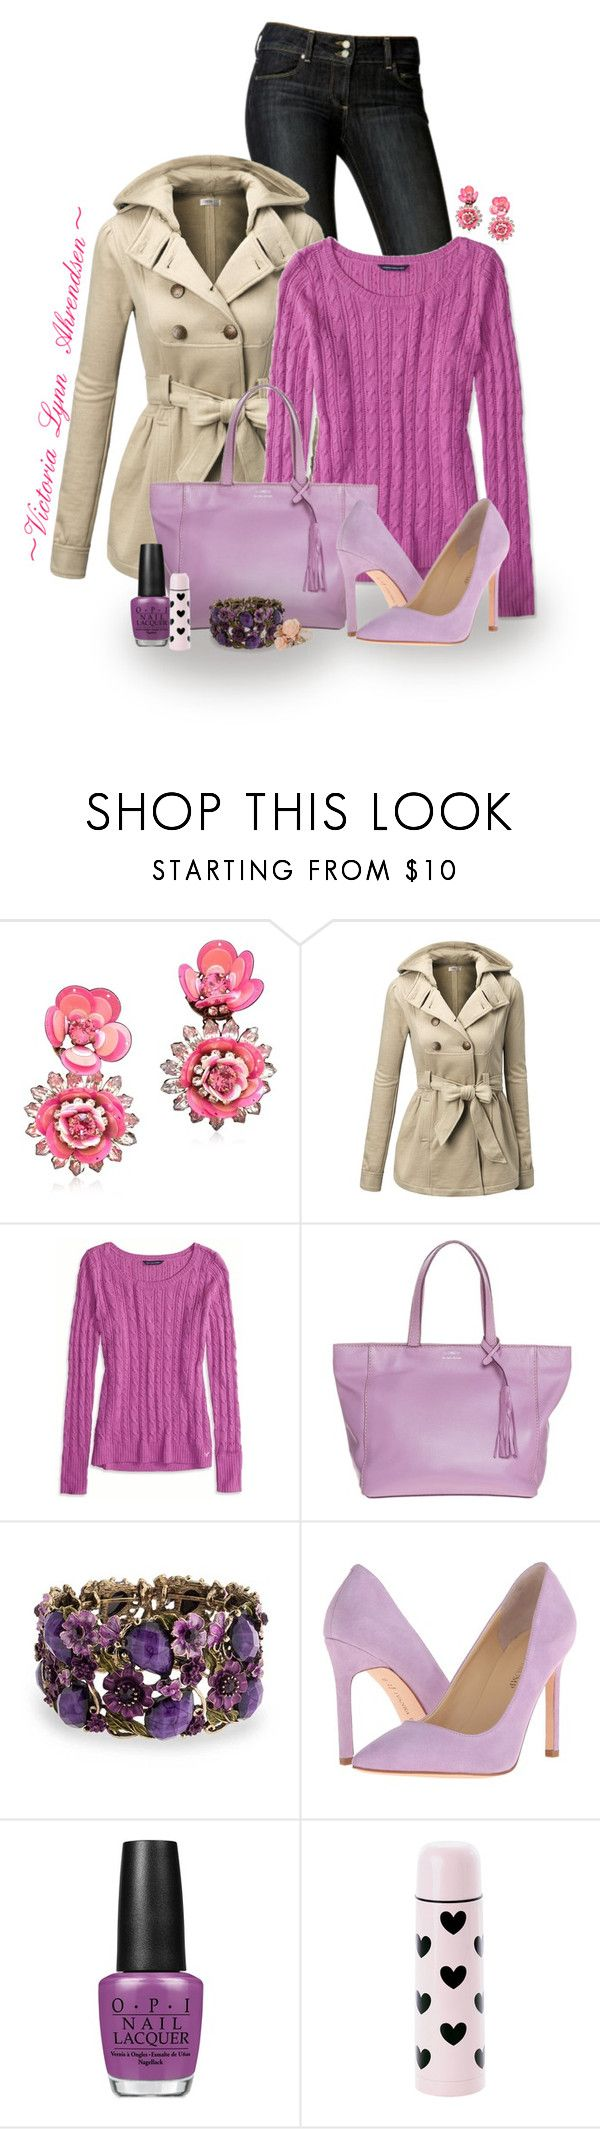 """""""Outfit Set #5! :-)"""" by vahrendsen1988 ❤ liked on Polyvore featuring Paige Denim, Shourouk, Doublju, American Eagle Outfitters, Loxwood, Bling Jewelry, Ivanka Trump, OPI and Dorothy Perkins"""